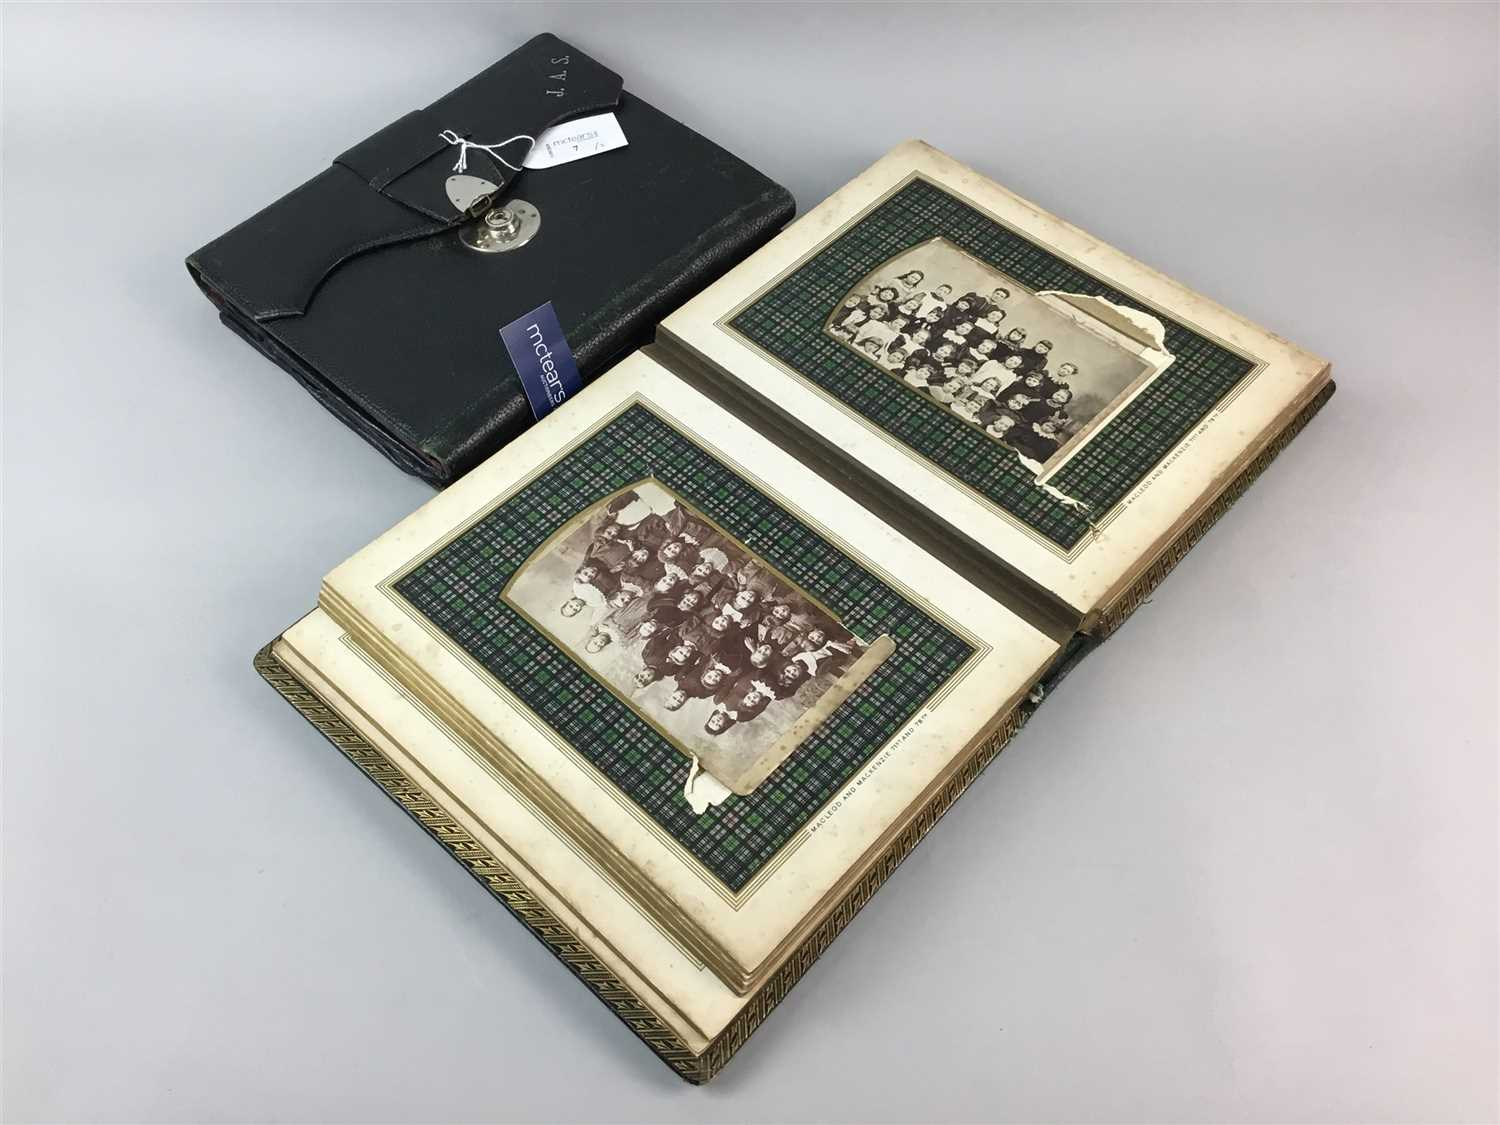 Lot 7-A VICTORIAN PHOTOGRAPH ALBUM AND A LEATHER TRAVELLING CORRESPONDENCE SET